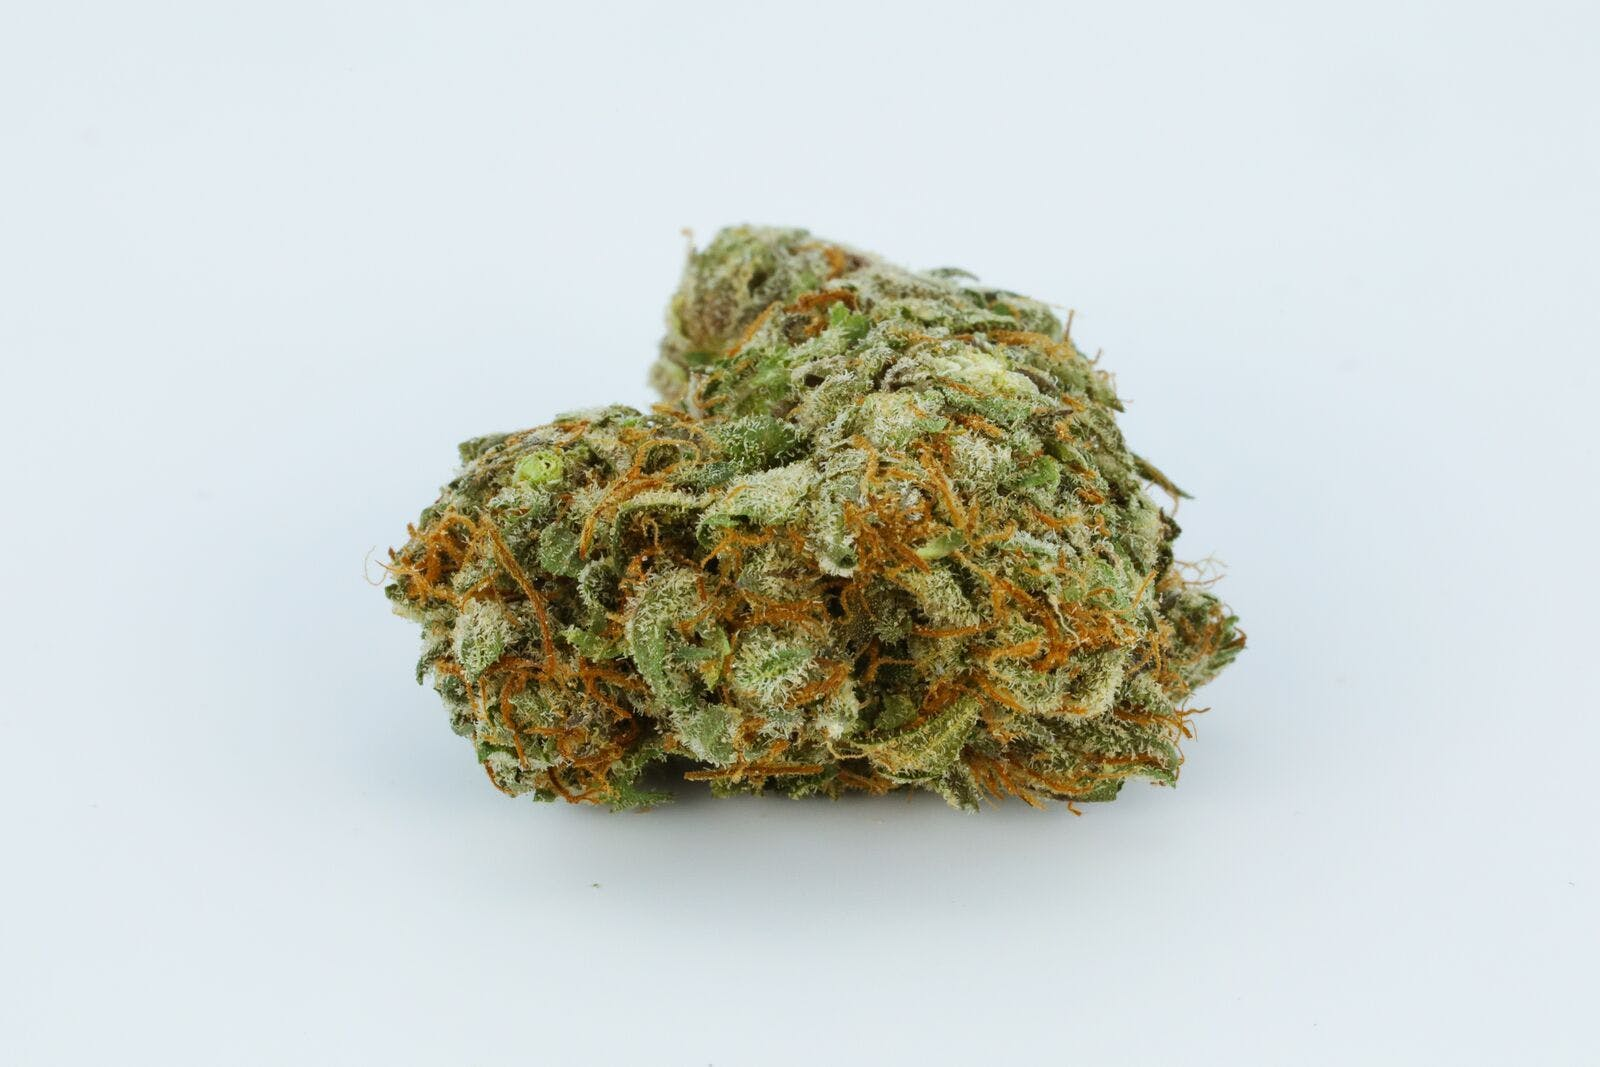 Kryptonite weed; Kryptonite cannabis strain; Kryptonite Indica Marijuana Strain